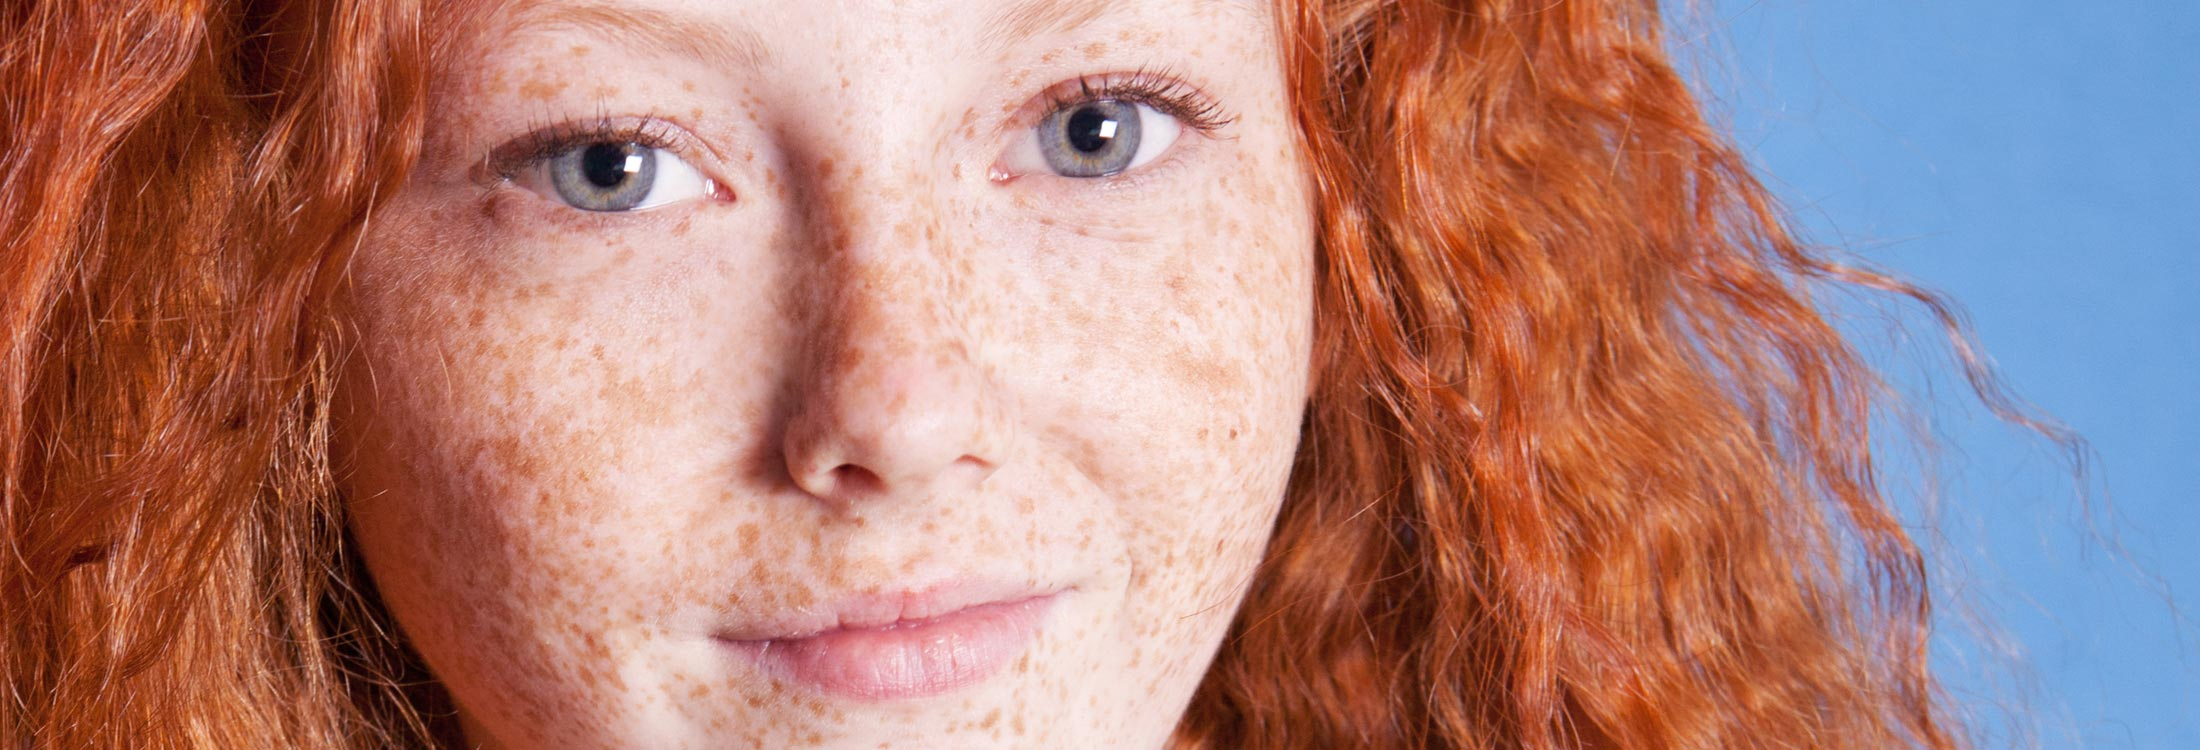 Radien Dermatology - Freckles and Sun Damage